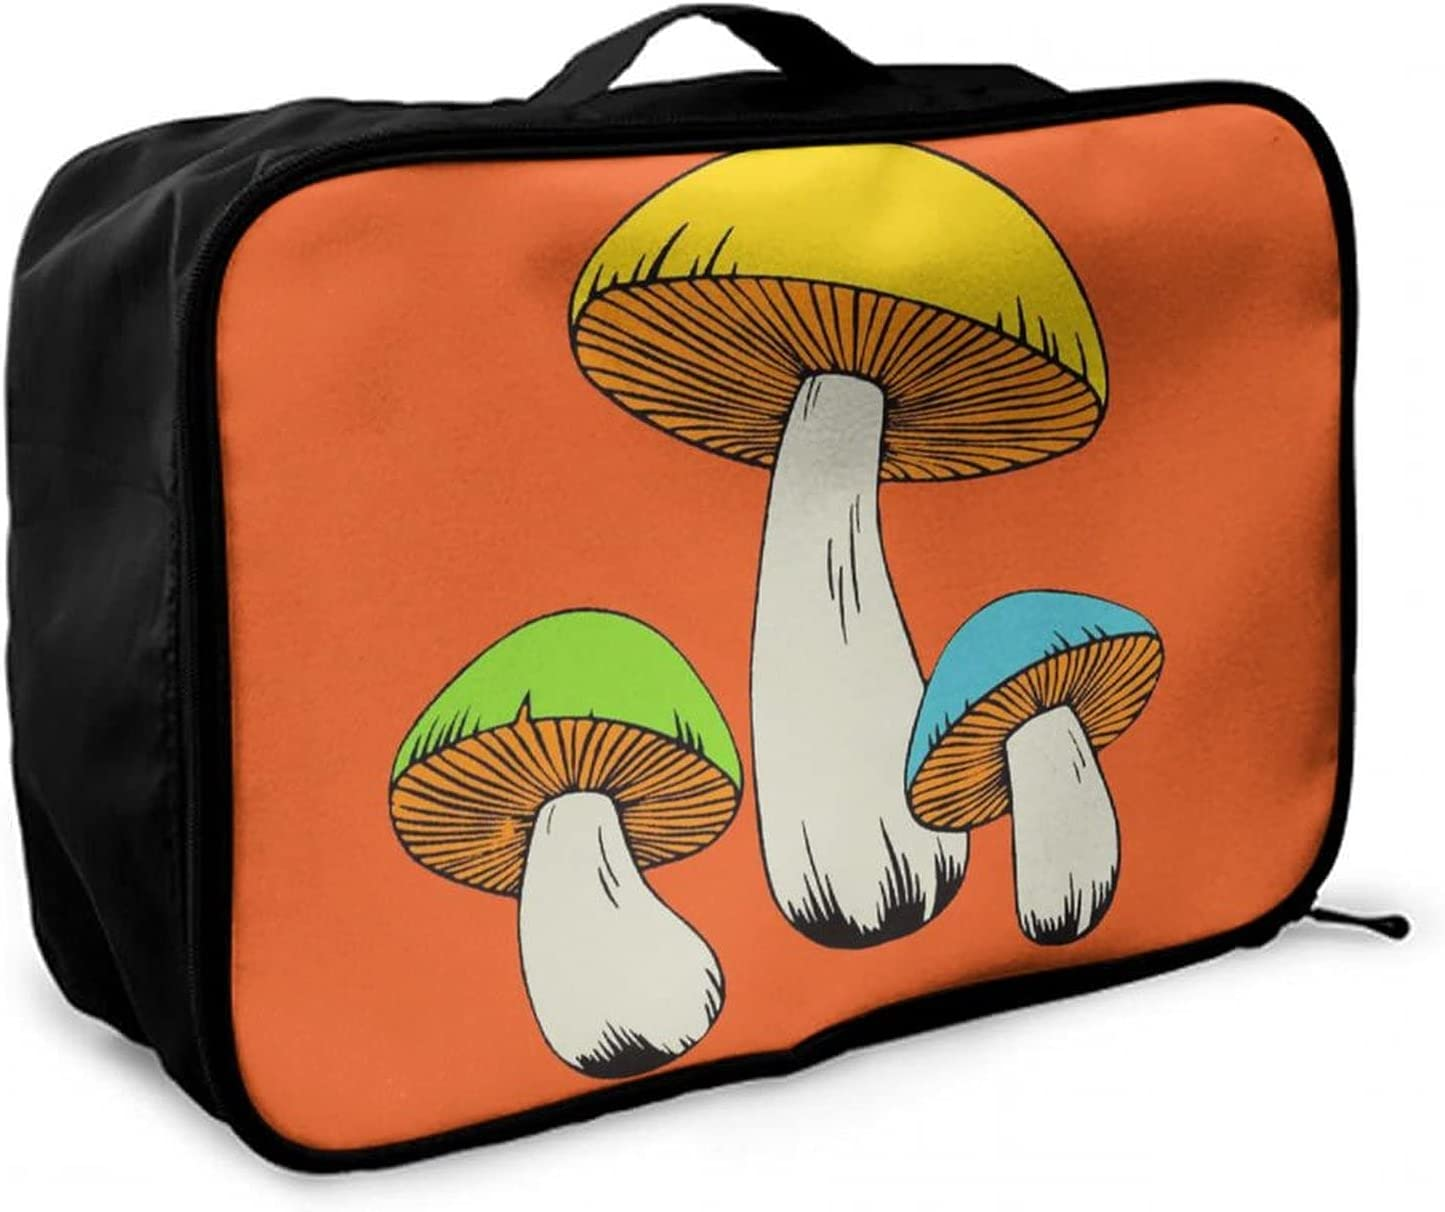 NiYoung Psychedelic Magic Discount is also New products, world's highest quality popular! underway Mushrooms Travel Large Ligh Duffle Bag